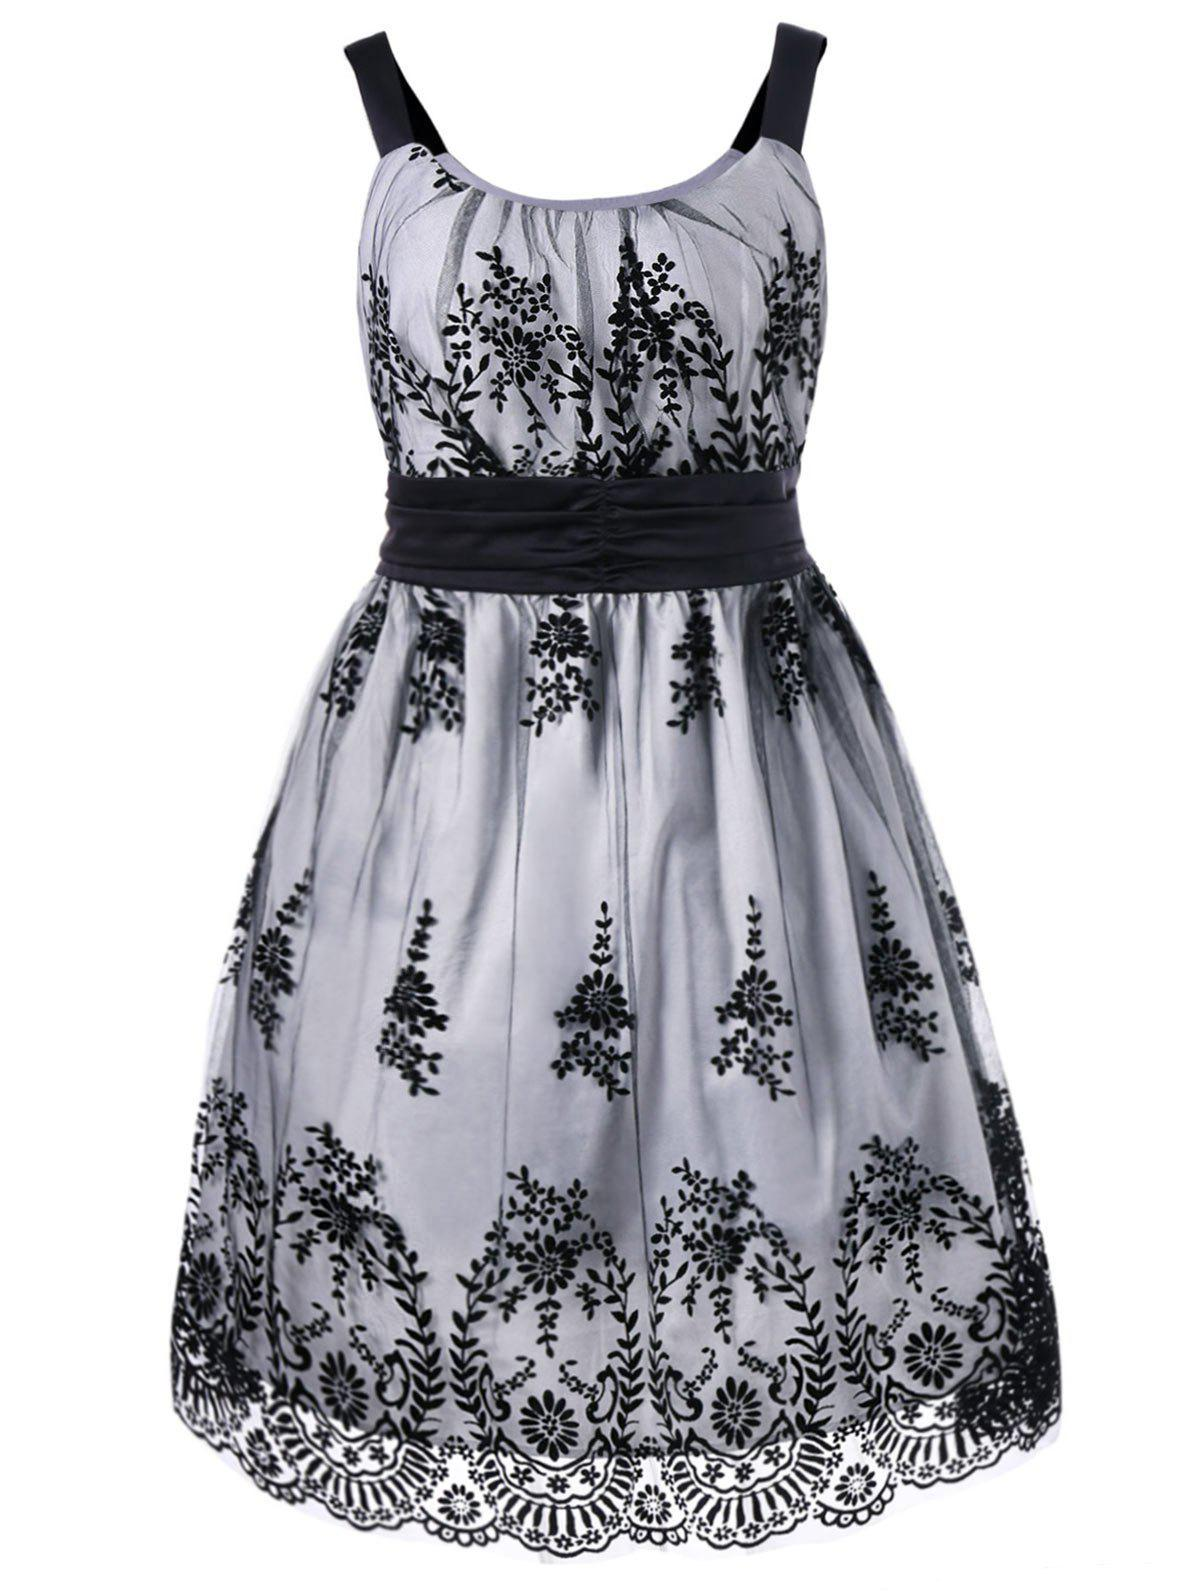 Plus Size High Waist Ball Gown Dress - WHITE/BLACK XL